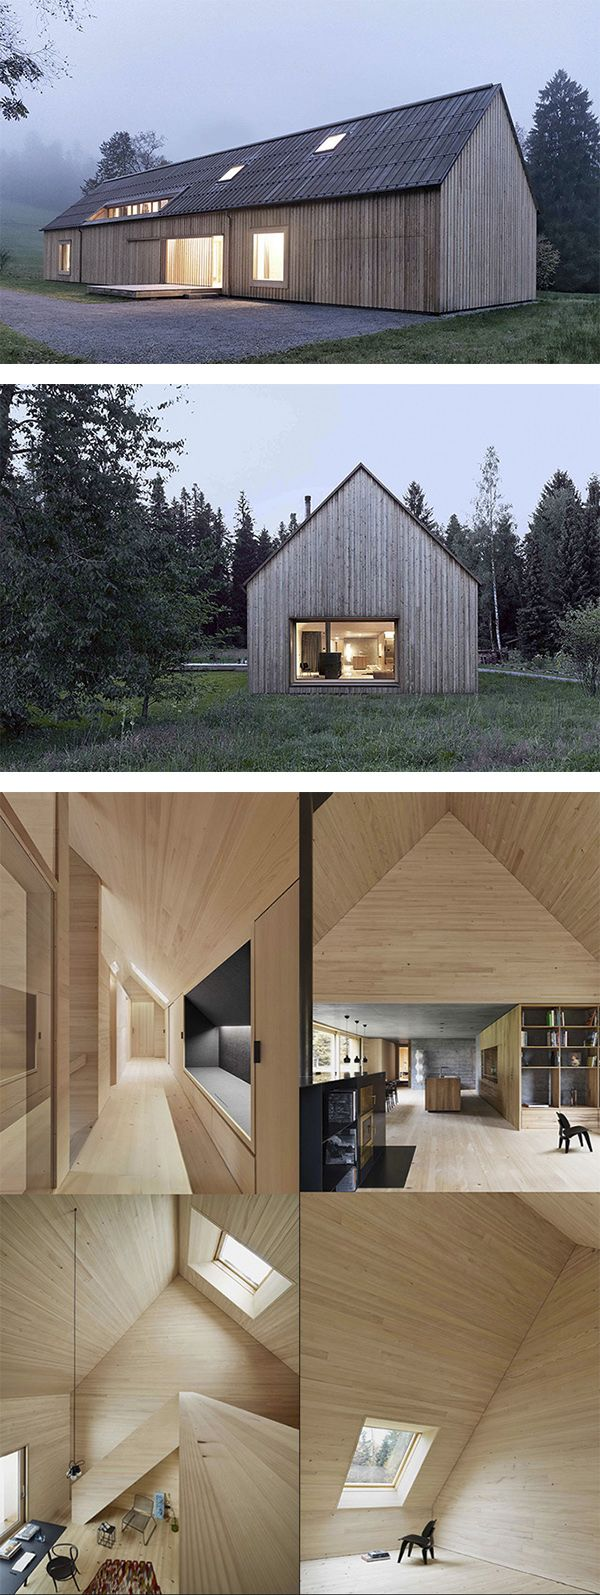 124 best architecture images on Pinterest | Home ideas, My house and ...